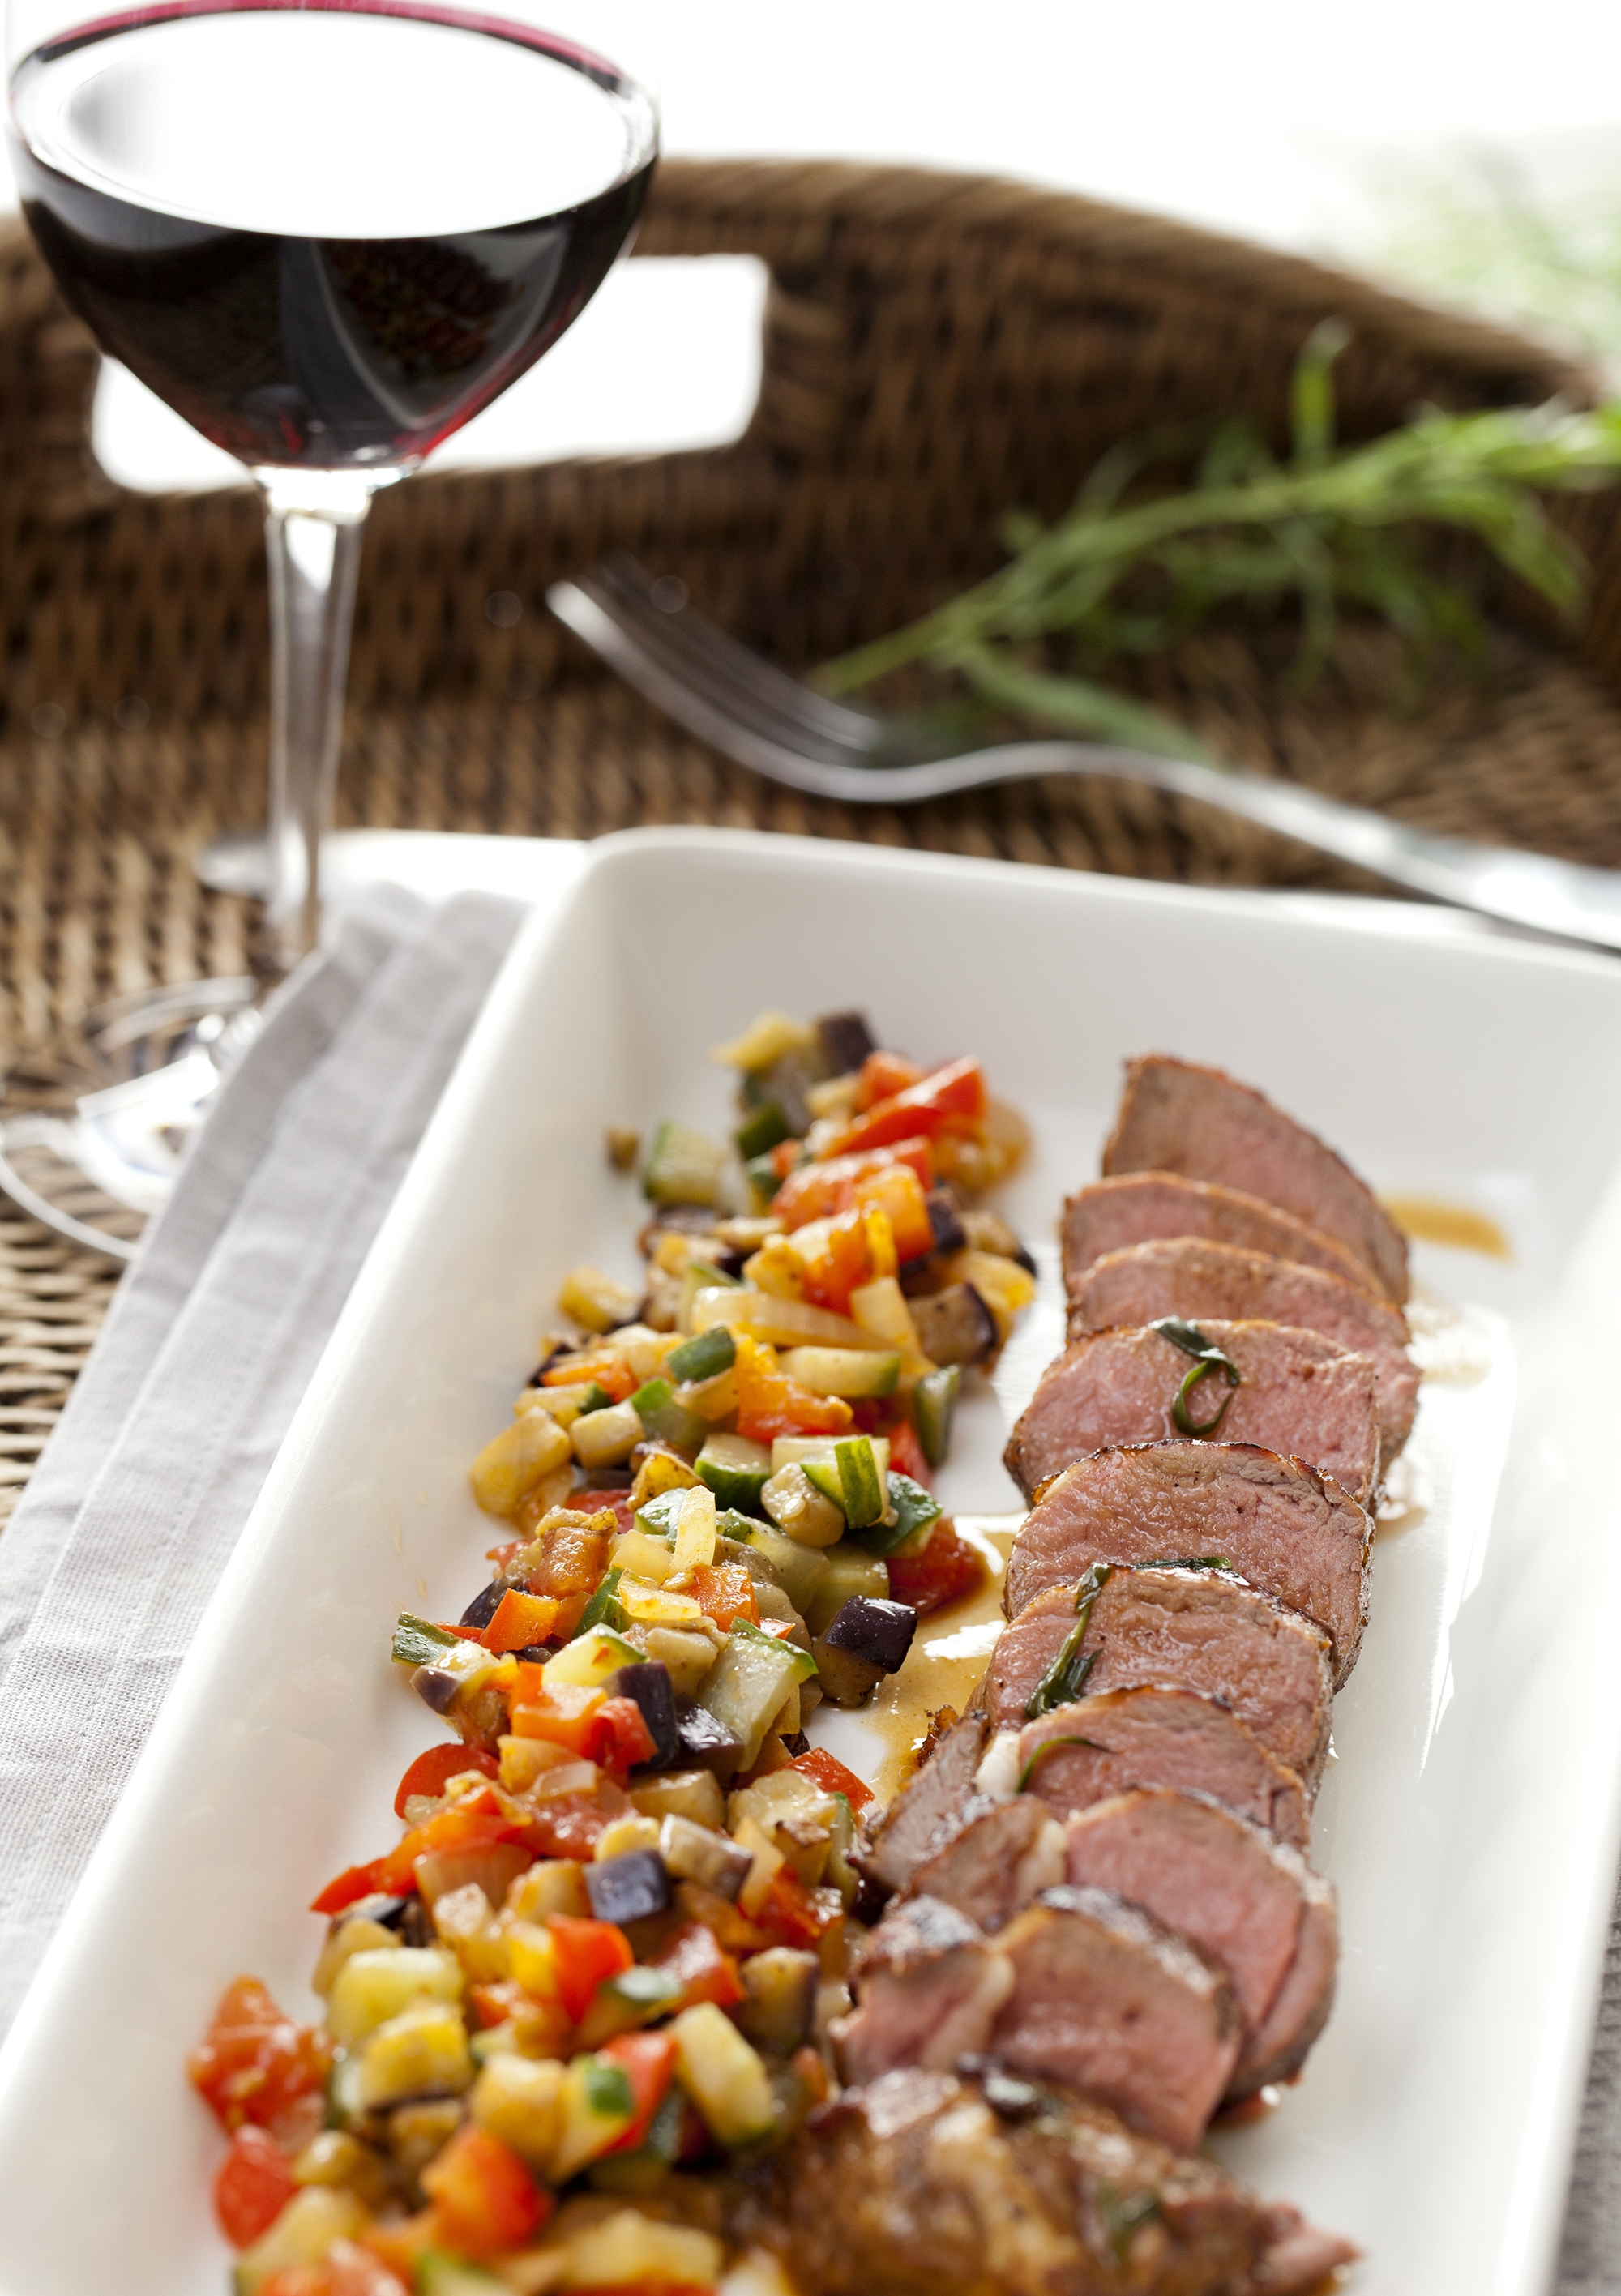 Lamsfilet met ratatouille